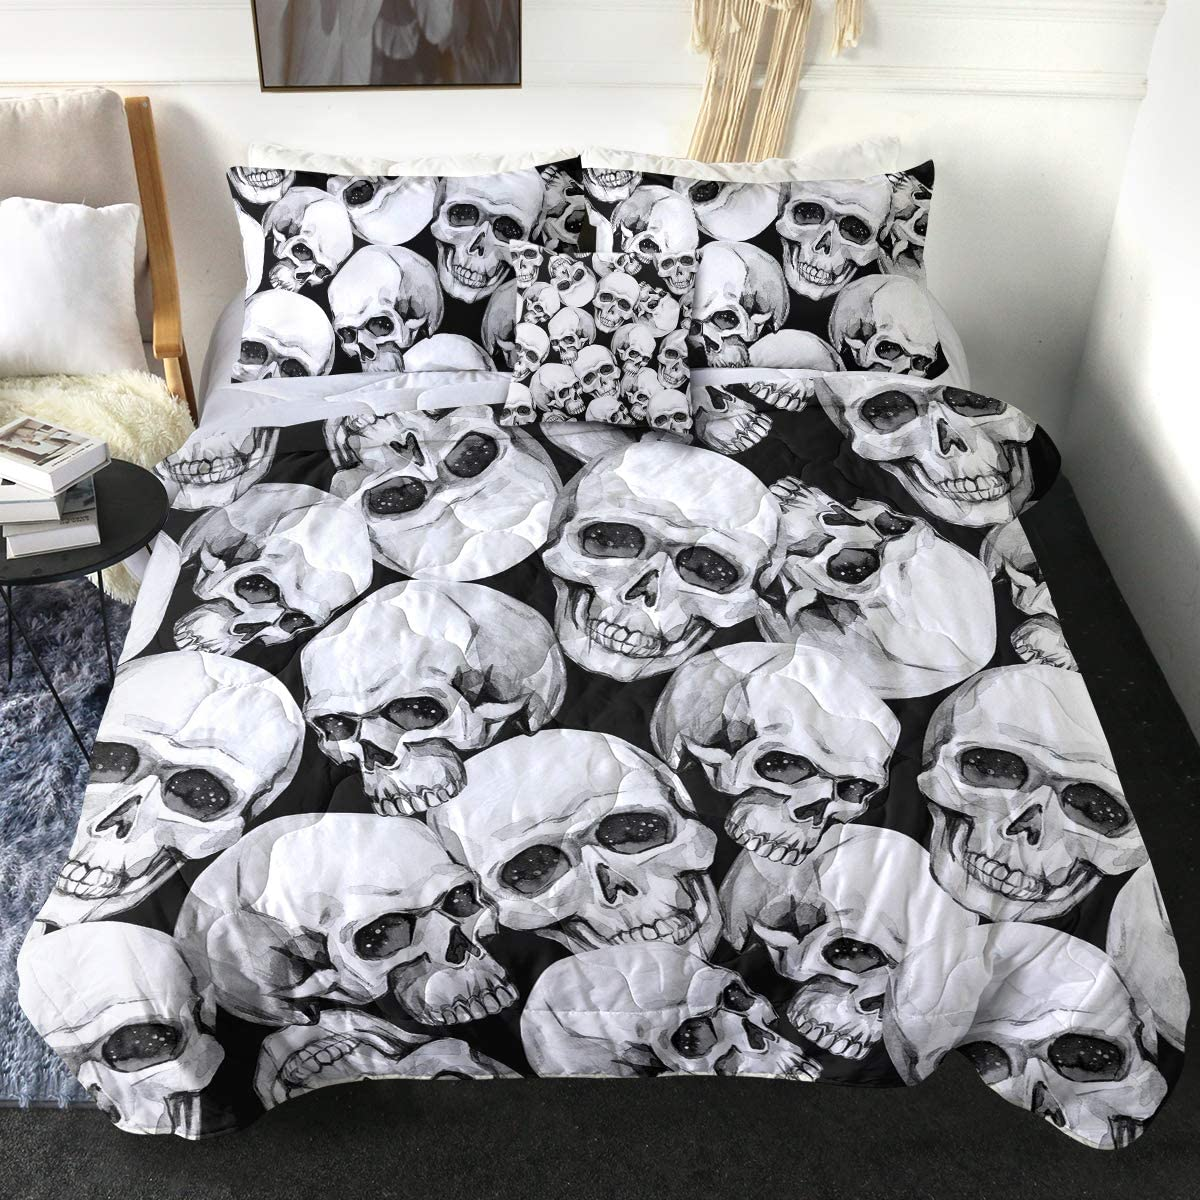 Sleepwish Mail order 3D Free Shipping New Retro Skulls Bed Comforter Black Got White King and